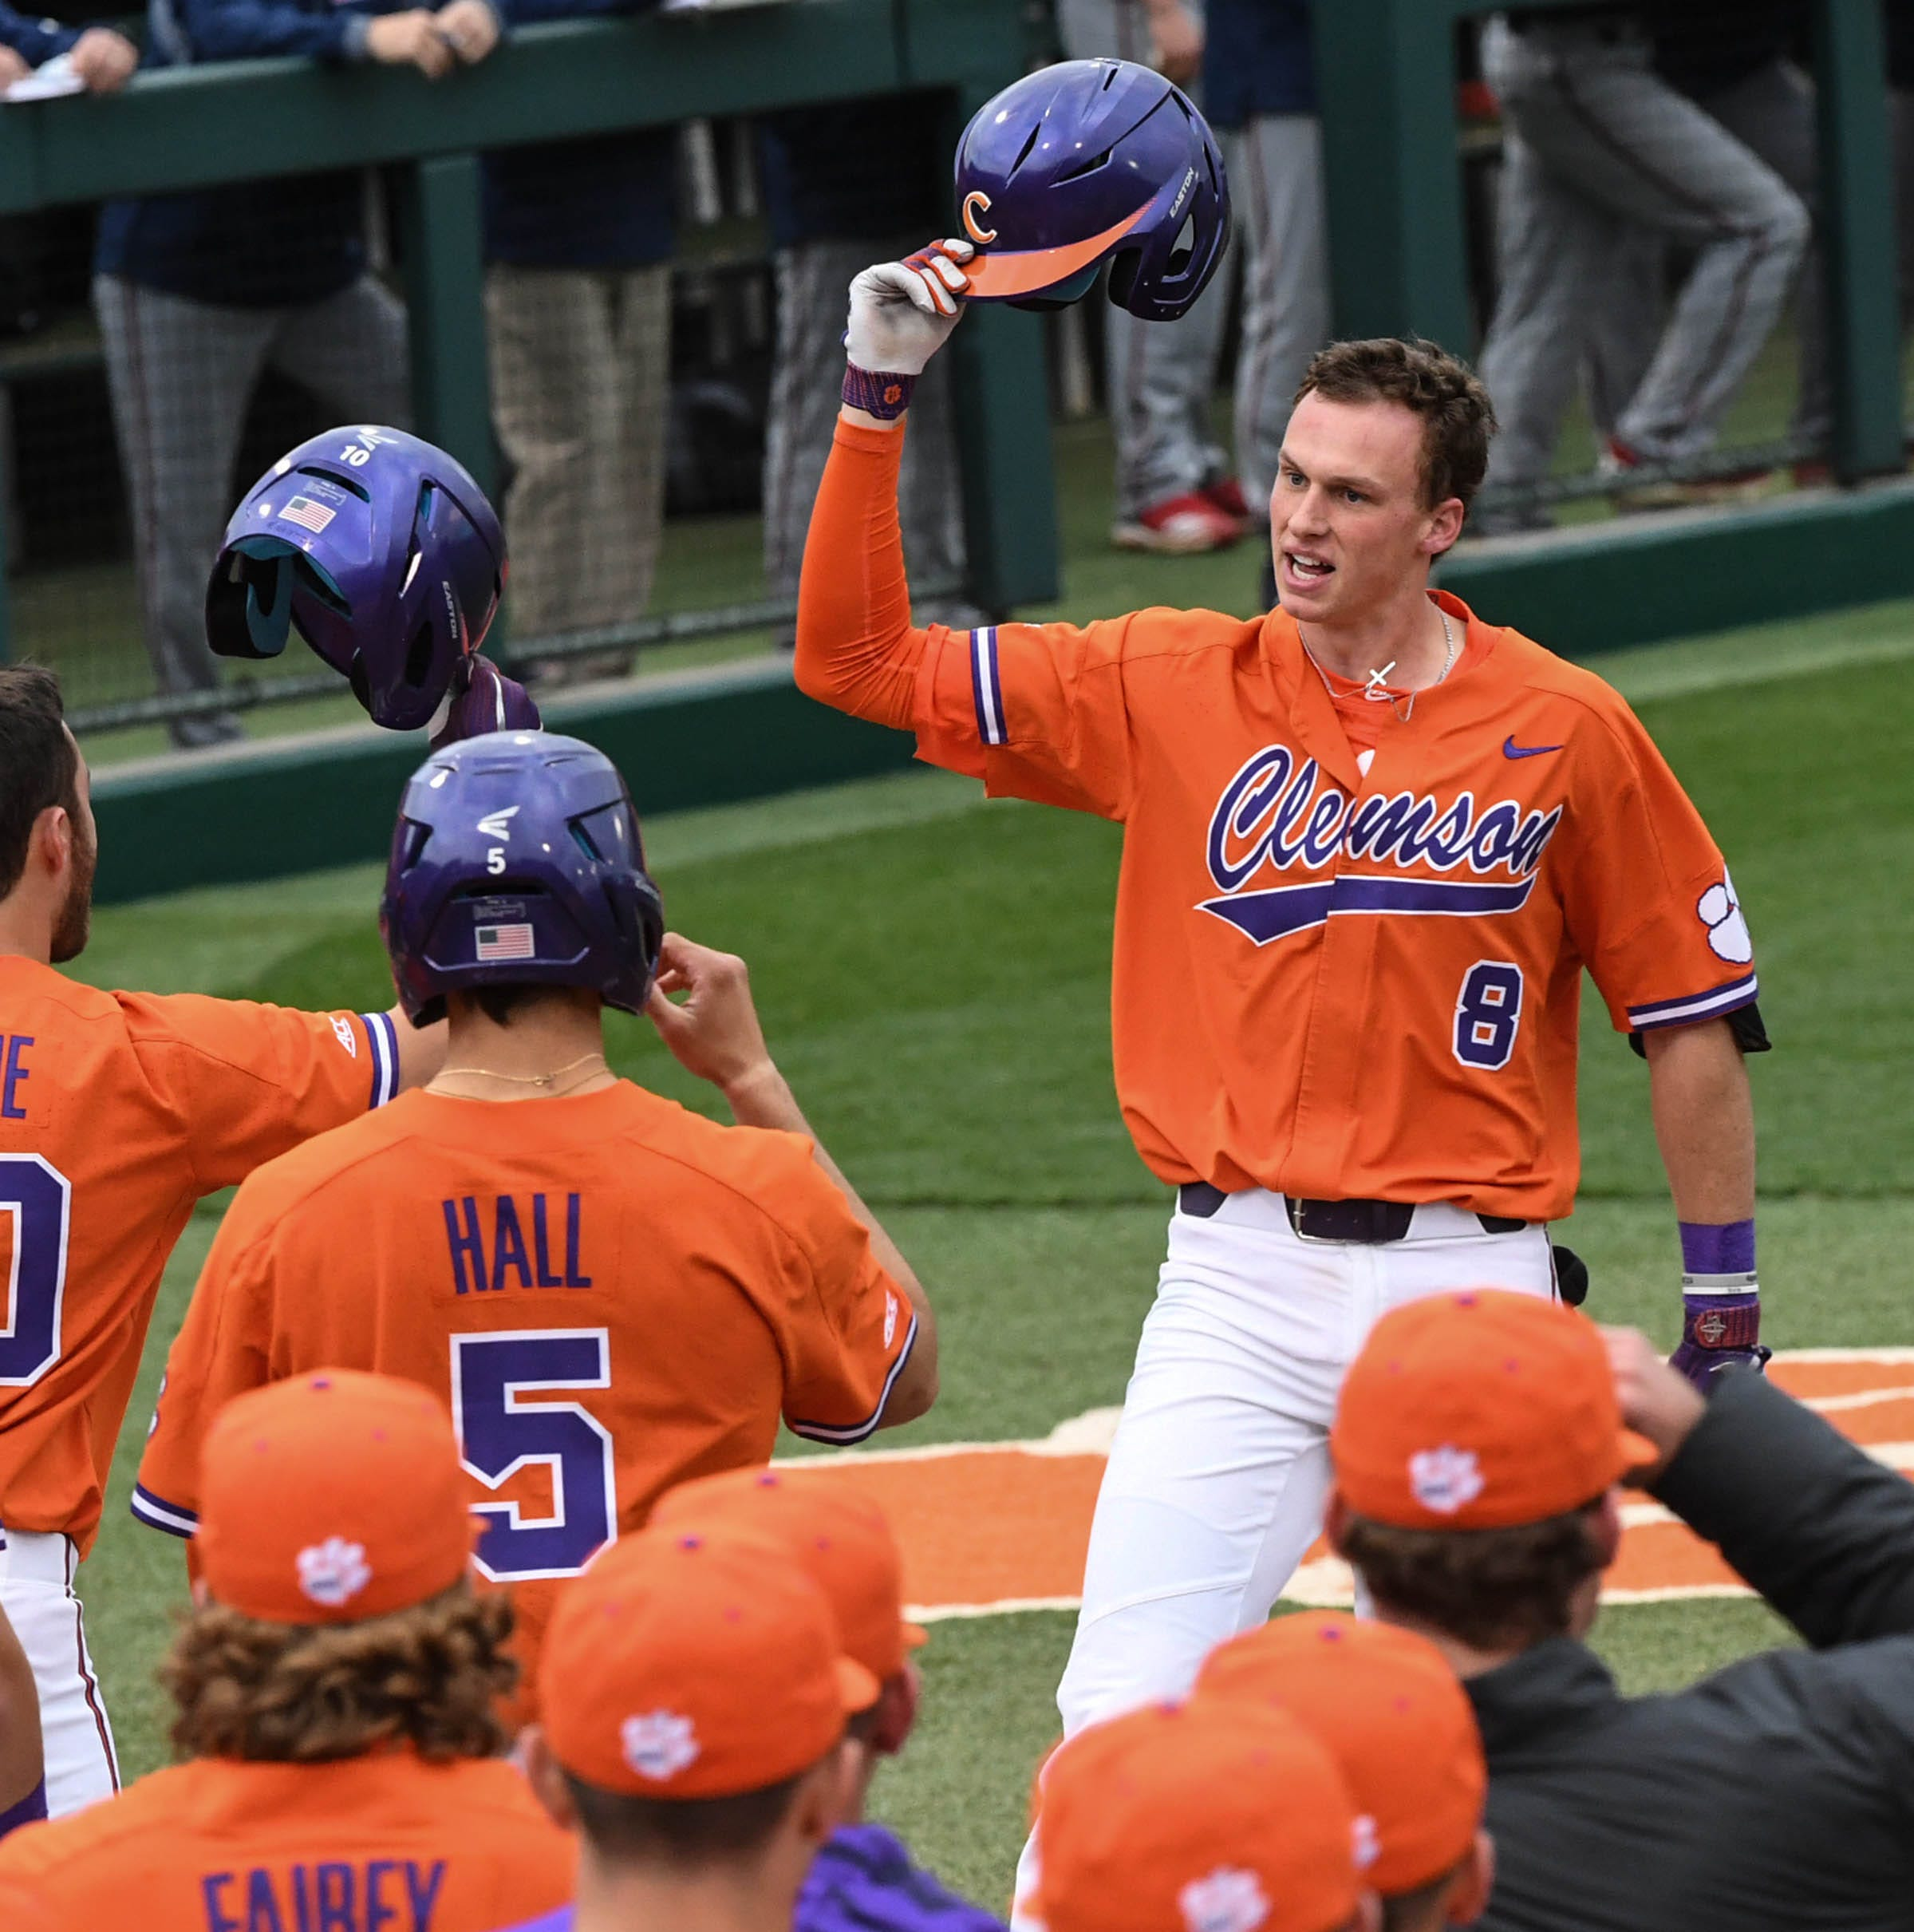 Clemson baseball team still playing long ball as 2019 season gets under way